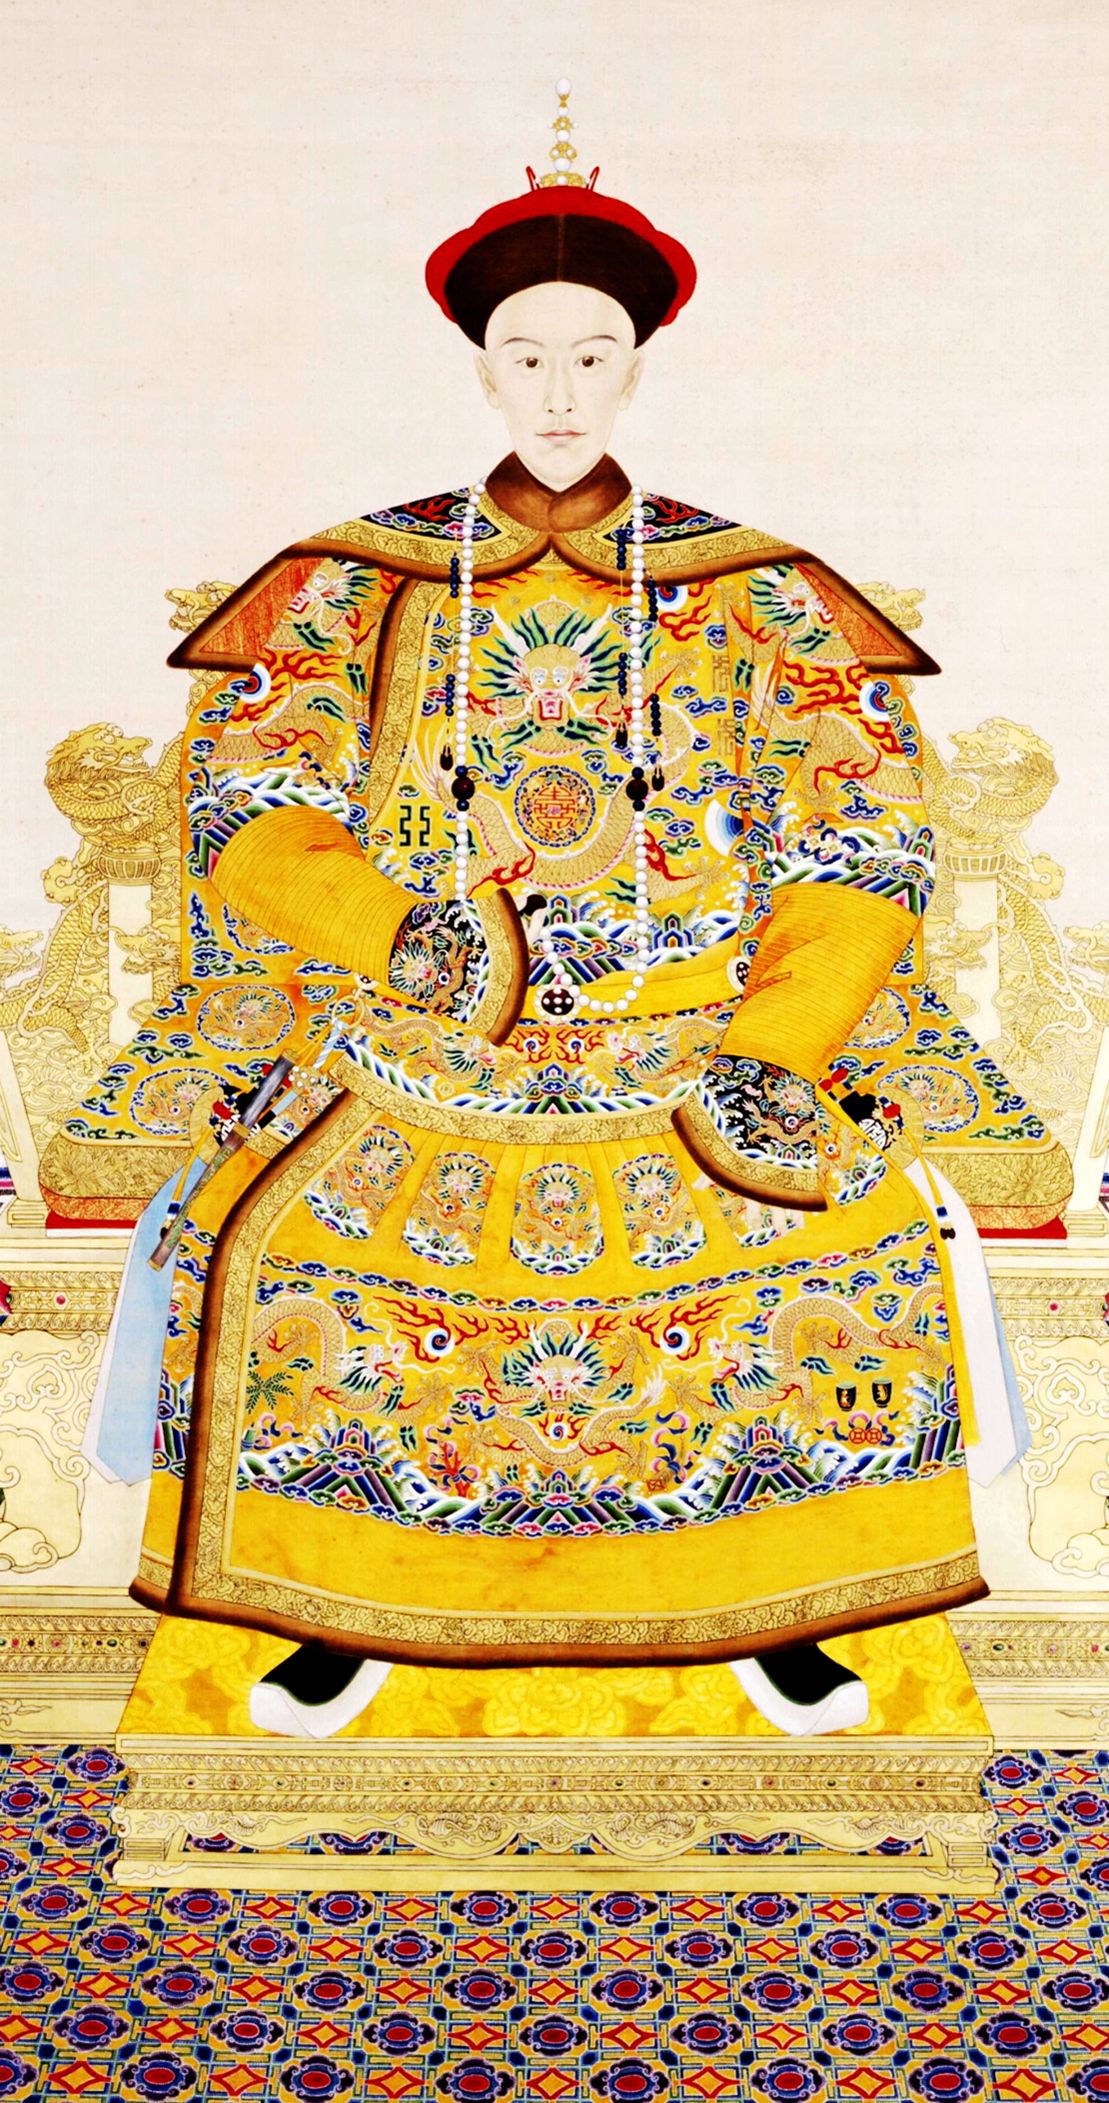 The Chinese Emperor's sittting posture. - General ...